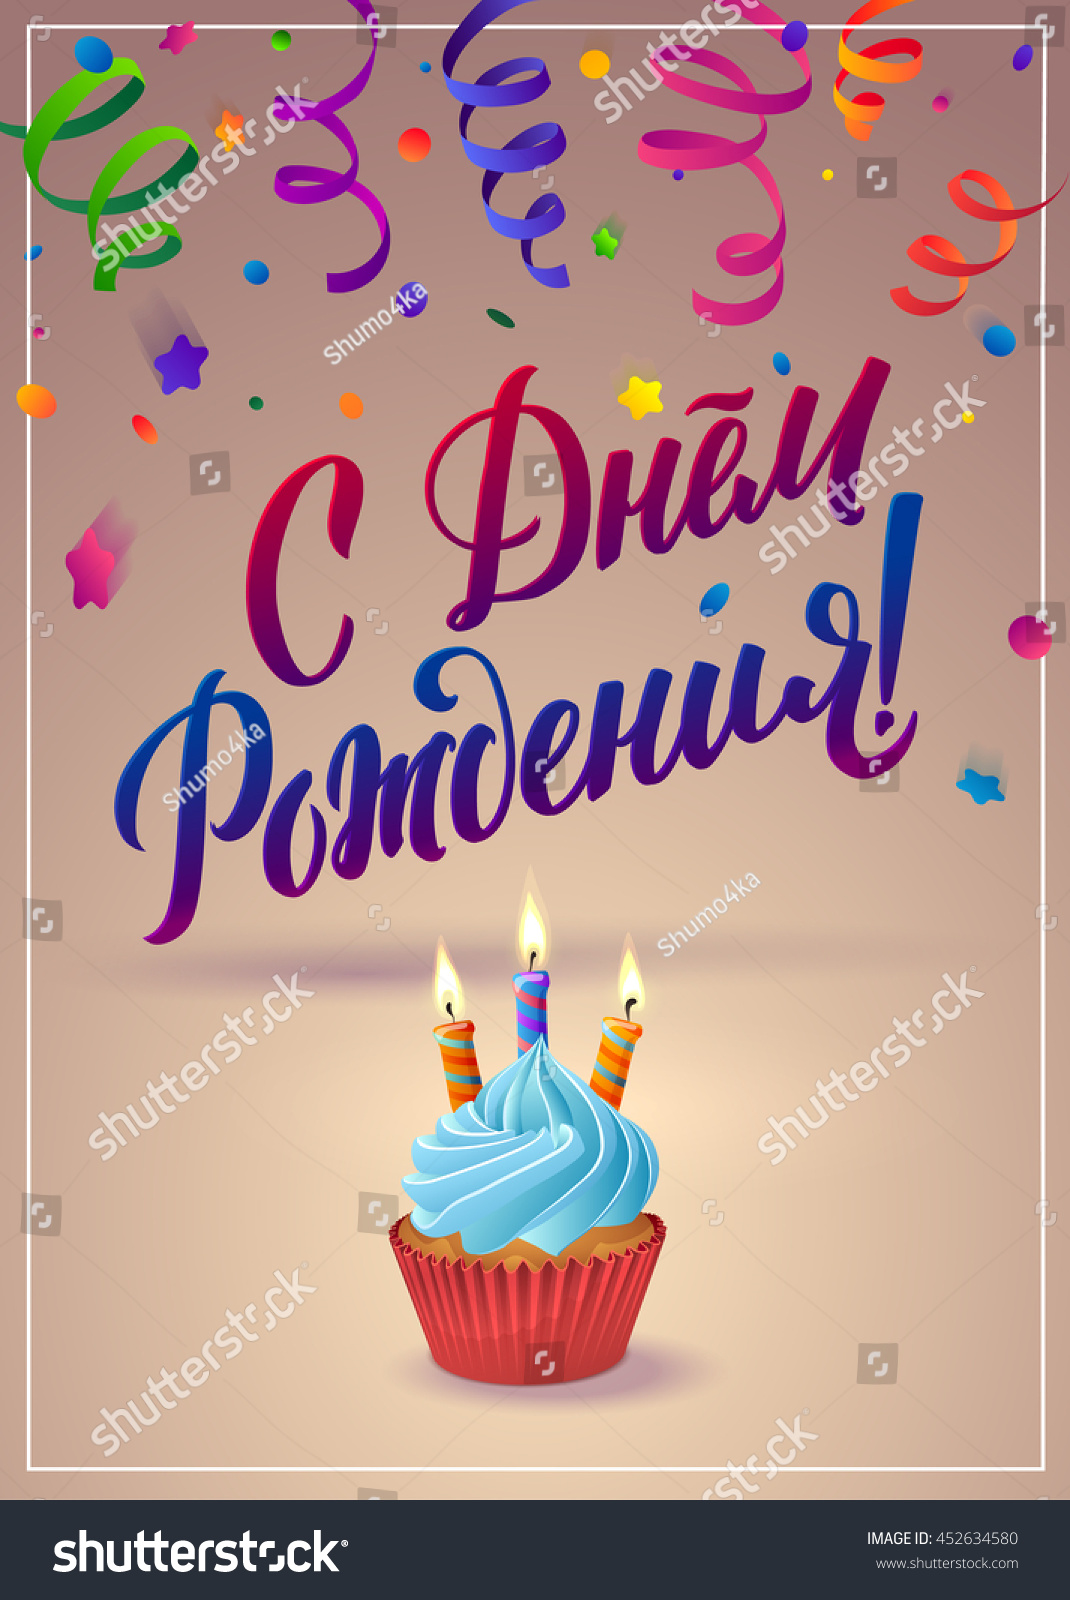 Happy Birthday Russian Calligraphy Greeting Card Ribbon And Cupcake Vector Illustration Background With Confetti